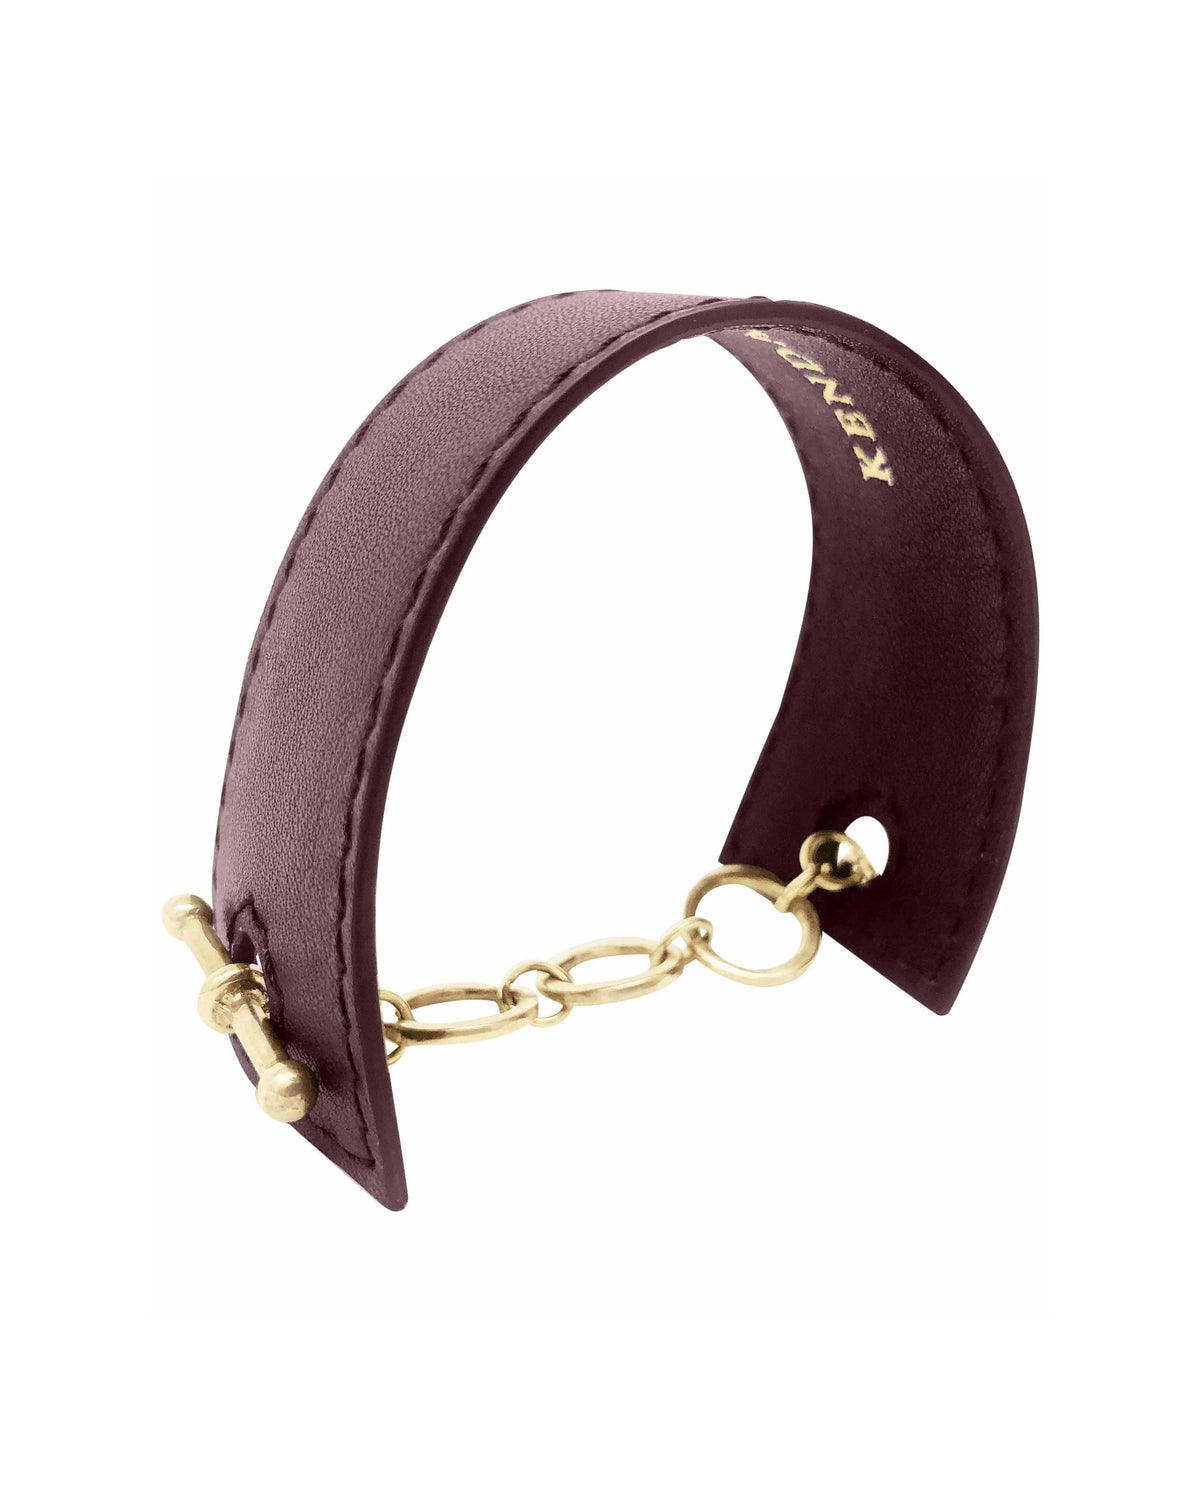 SAMARA CUFF in Chocolate Napa